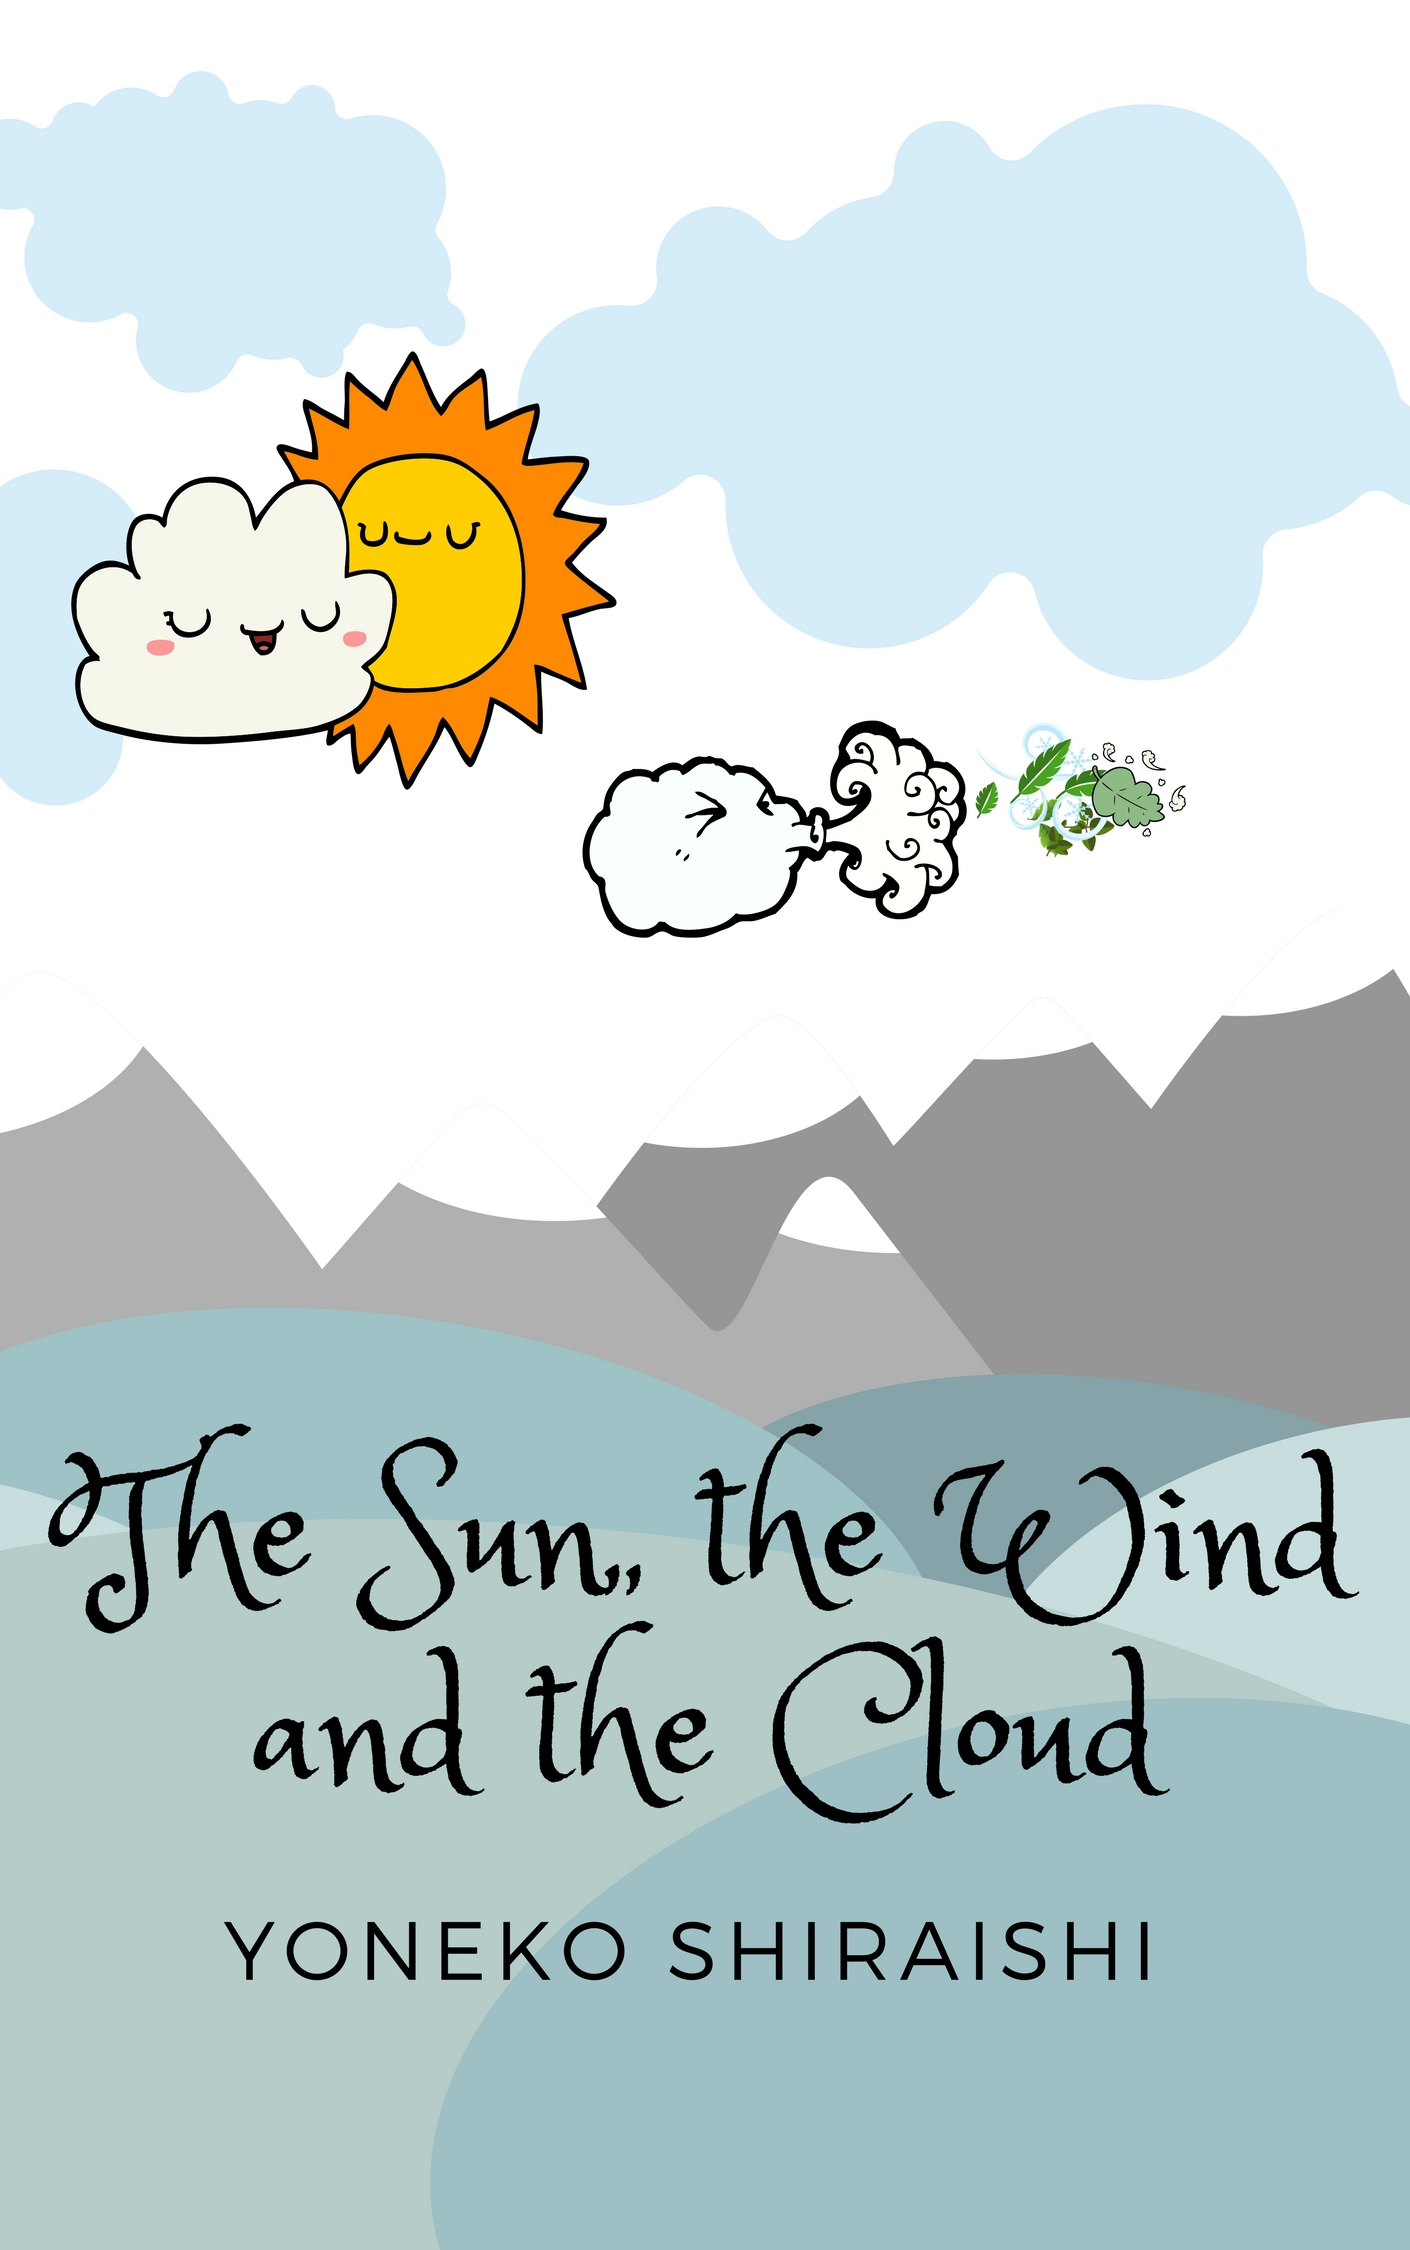 The sun, the wind and the cloud